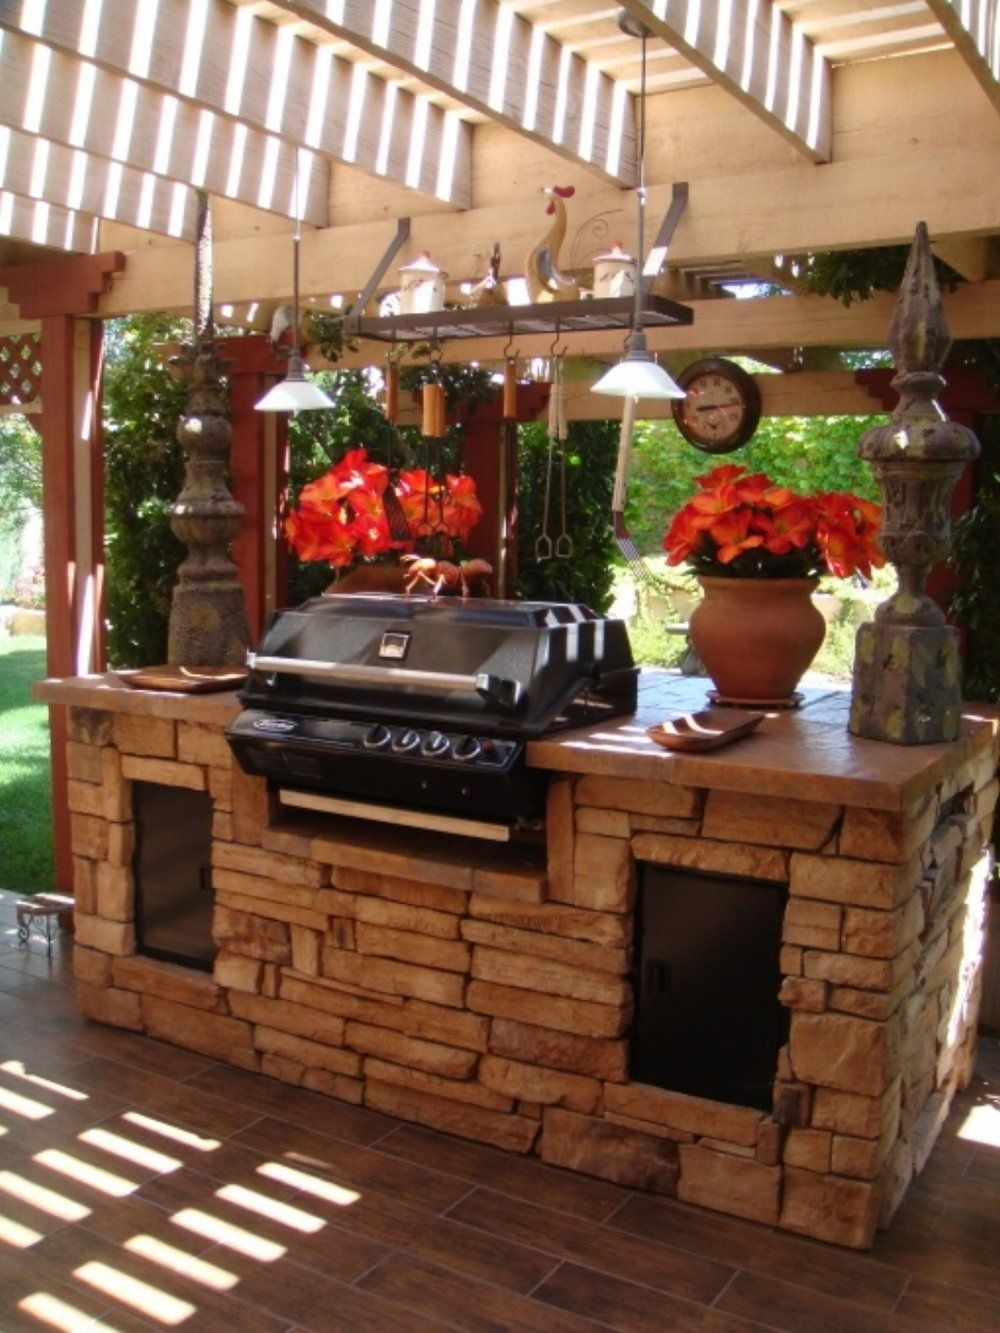 all about outdoor kitchen ideas on a budget diy covered tropical layout small rustic pool on outdoor kitchen ideas on a budget id=33623